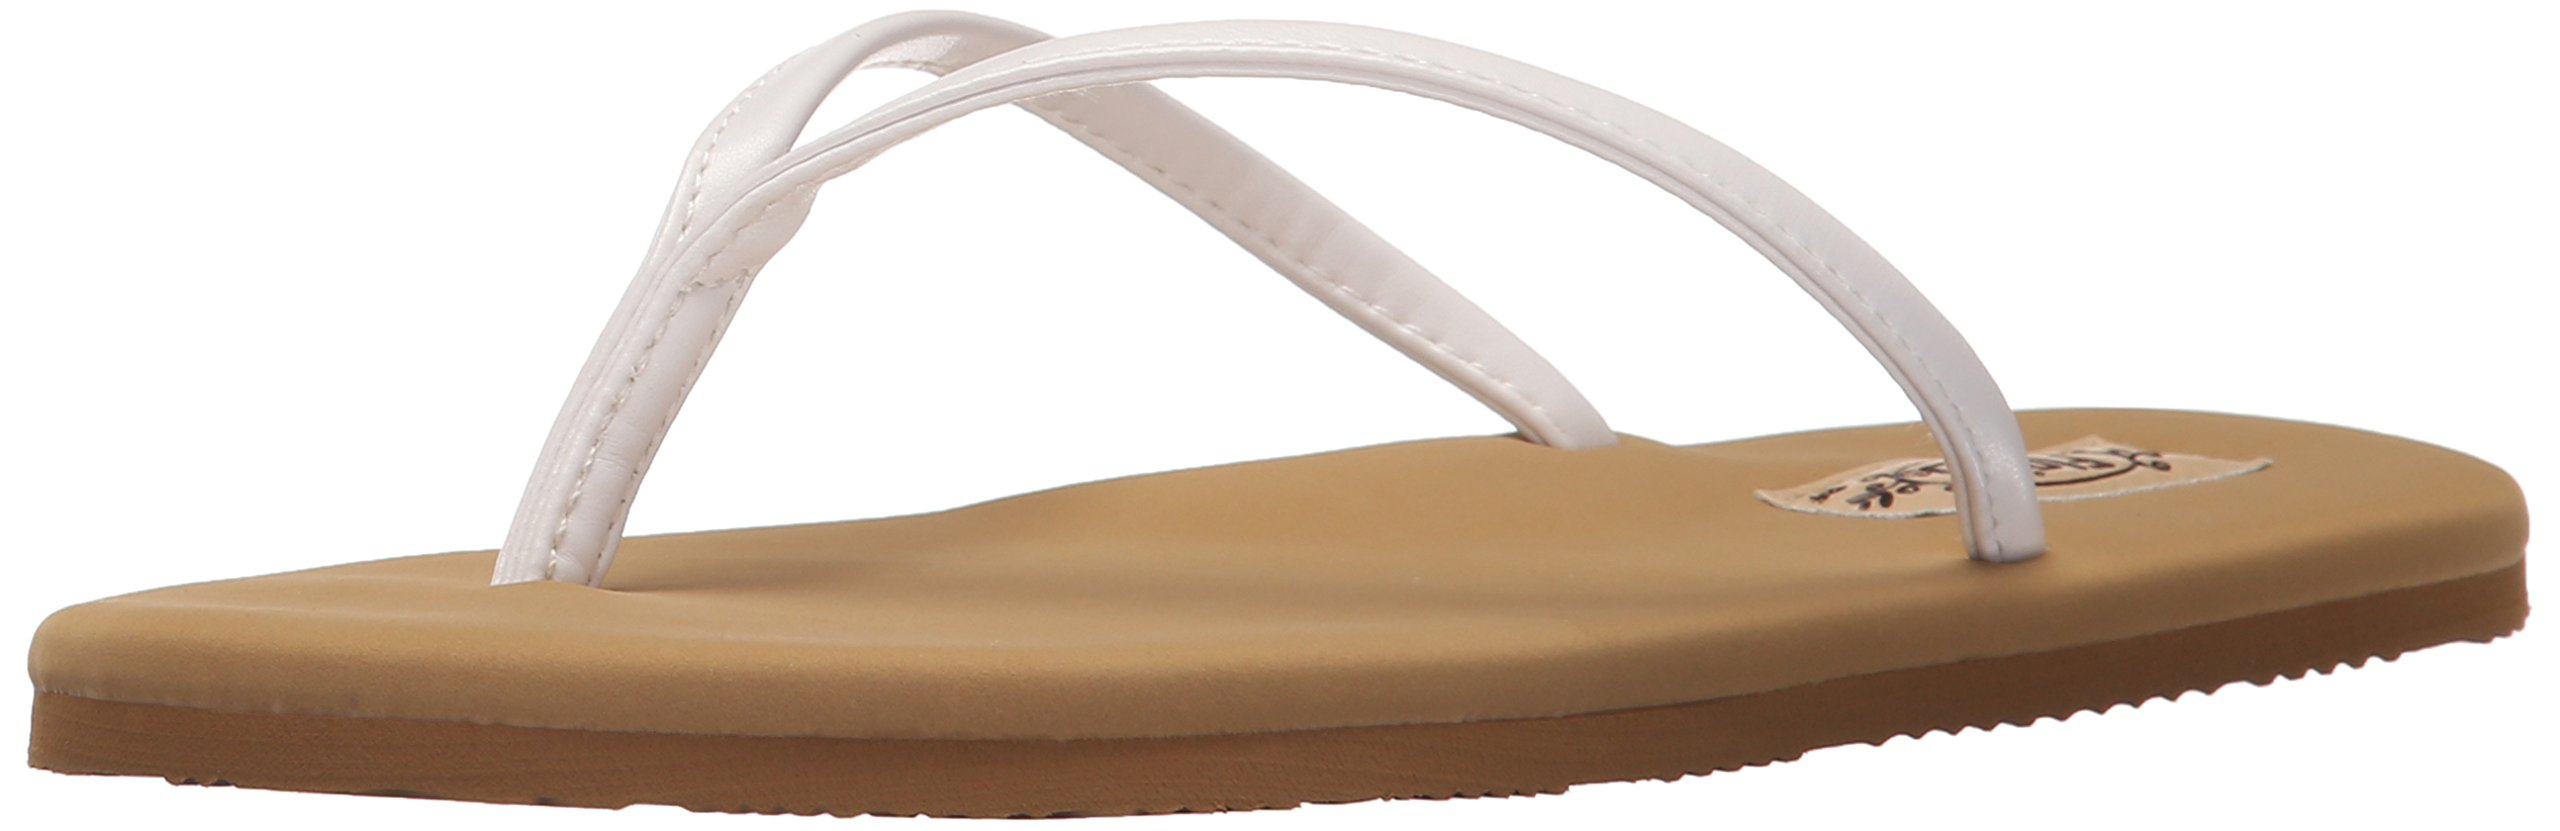 Flojos Women's Fiesta Flat, White/Tan, 8 M US